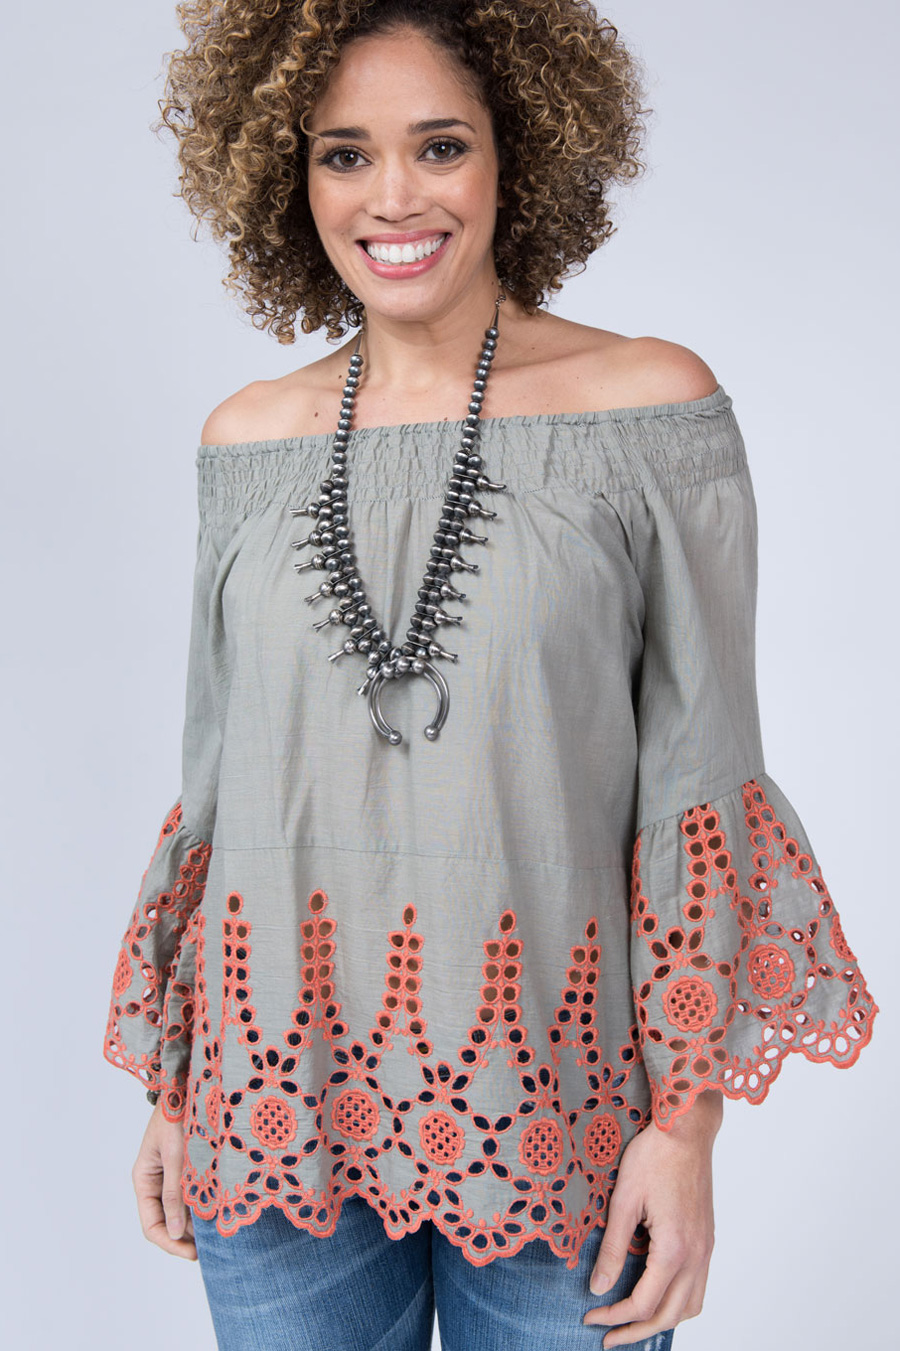 Ivy-Jane-Top-Style-621221-Fall-1-2018-Sm